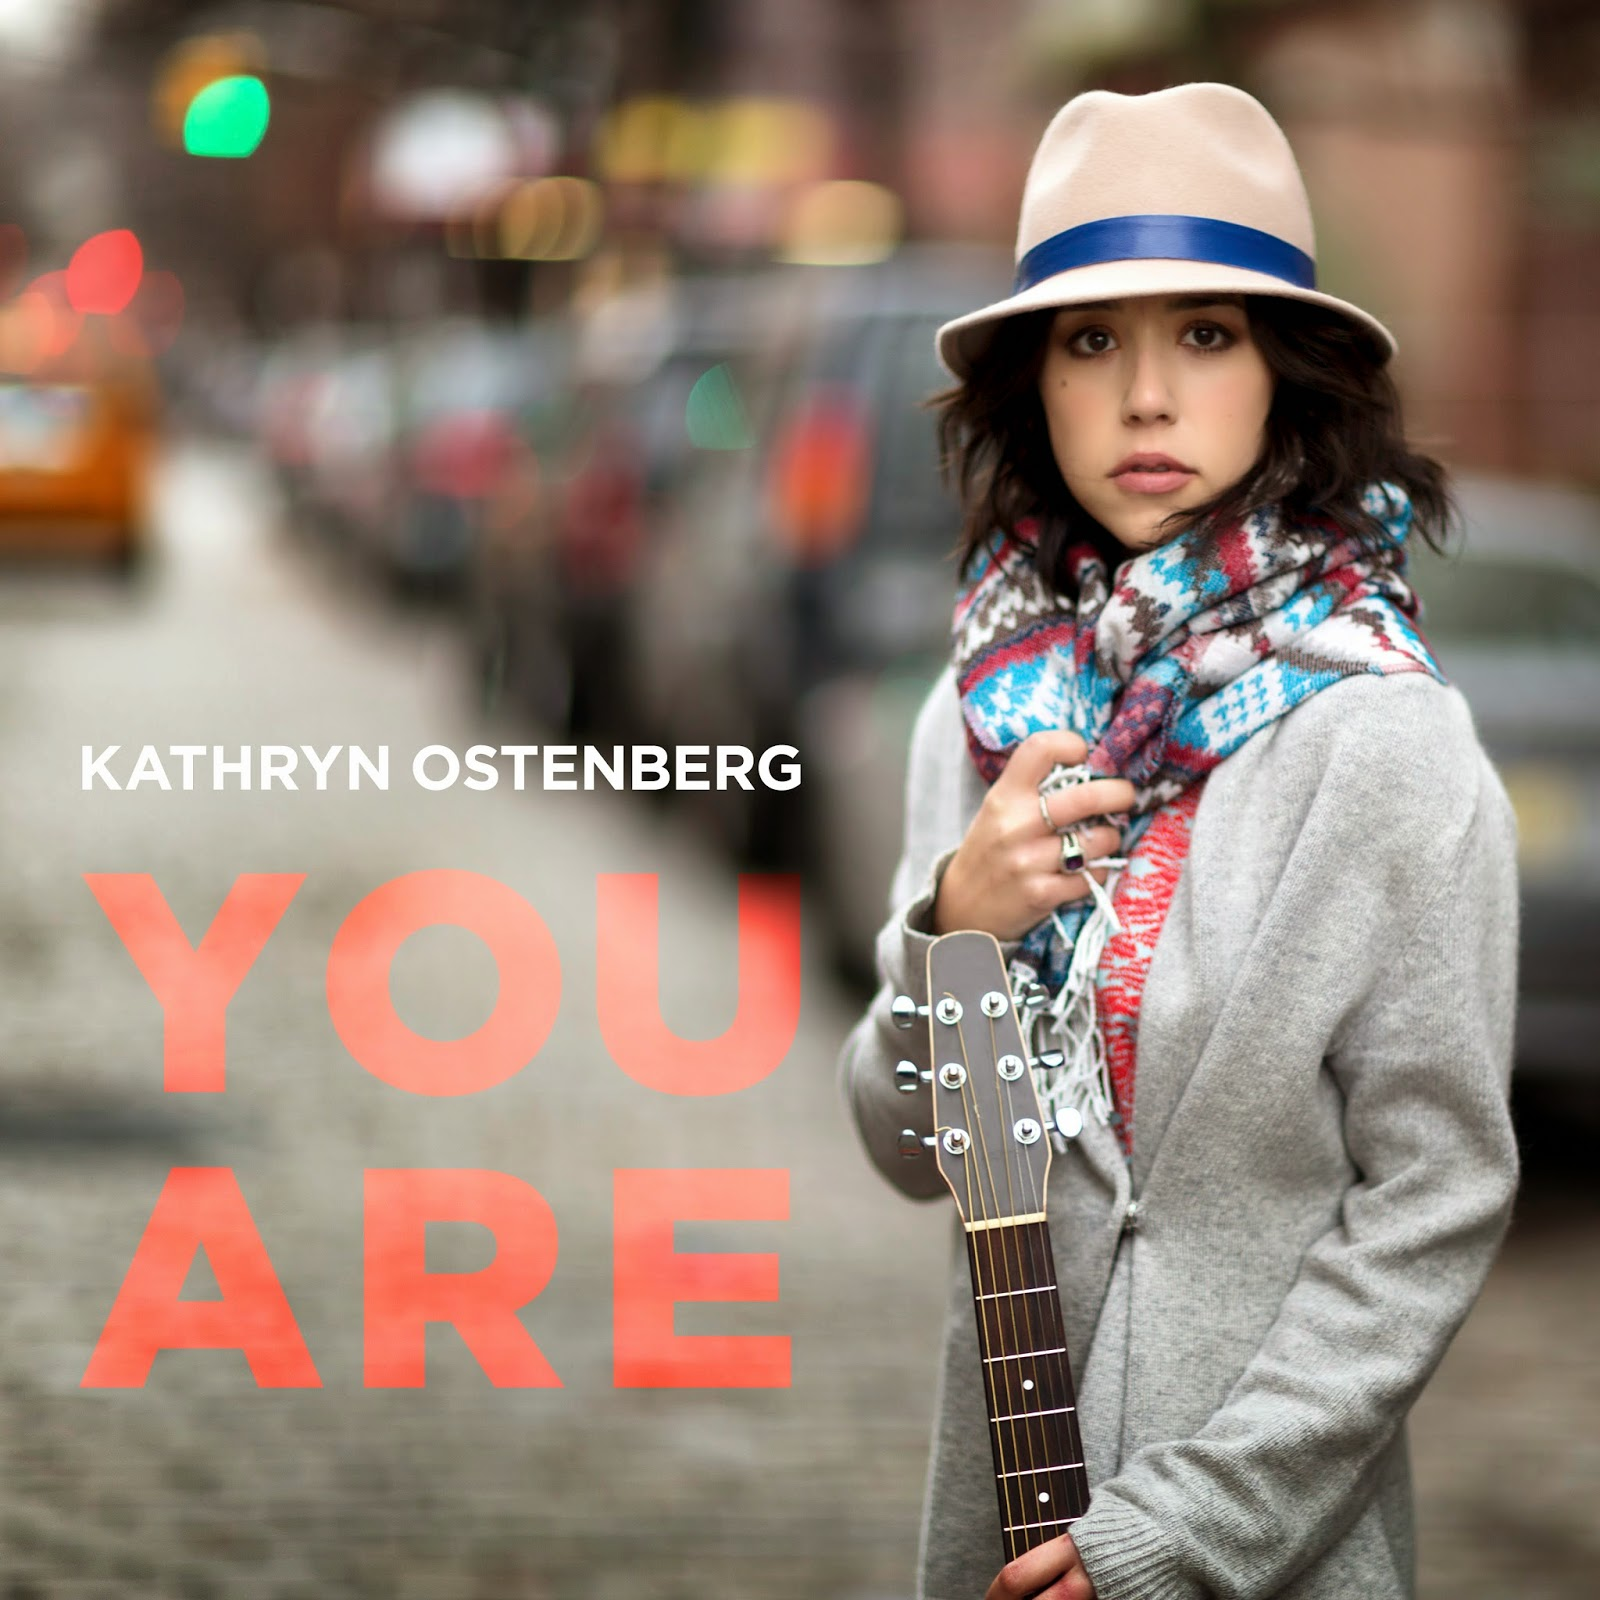 http://lachroniquedespassions.blogspot.fr/2014/05/you-are-kathryn-ostenberg.html